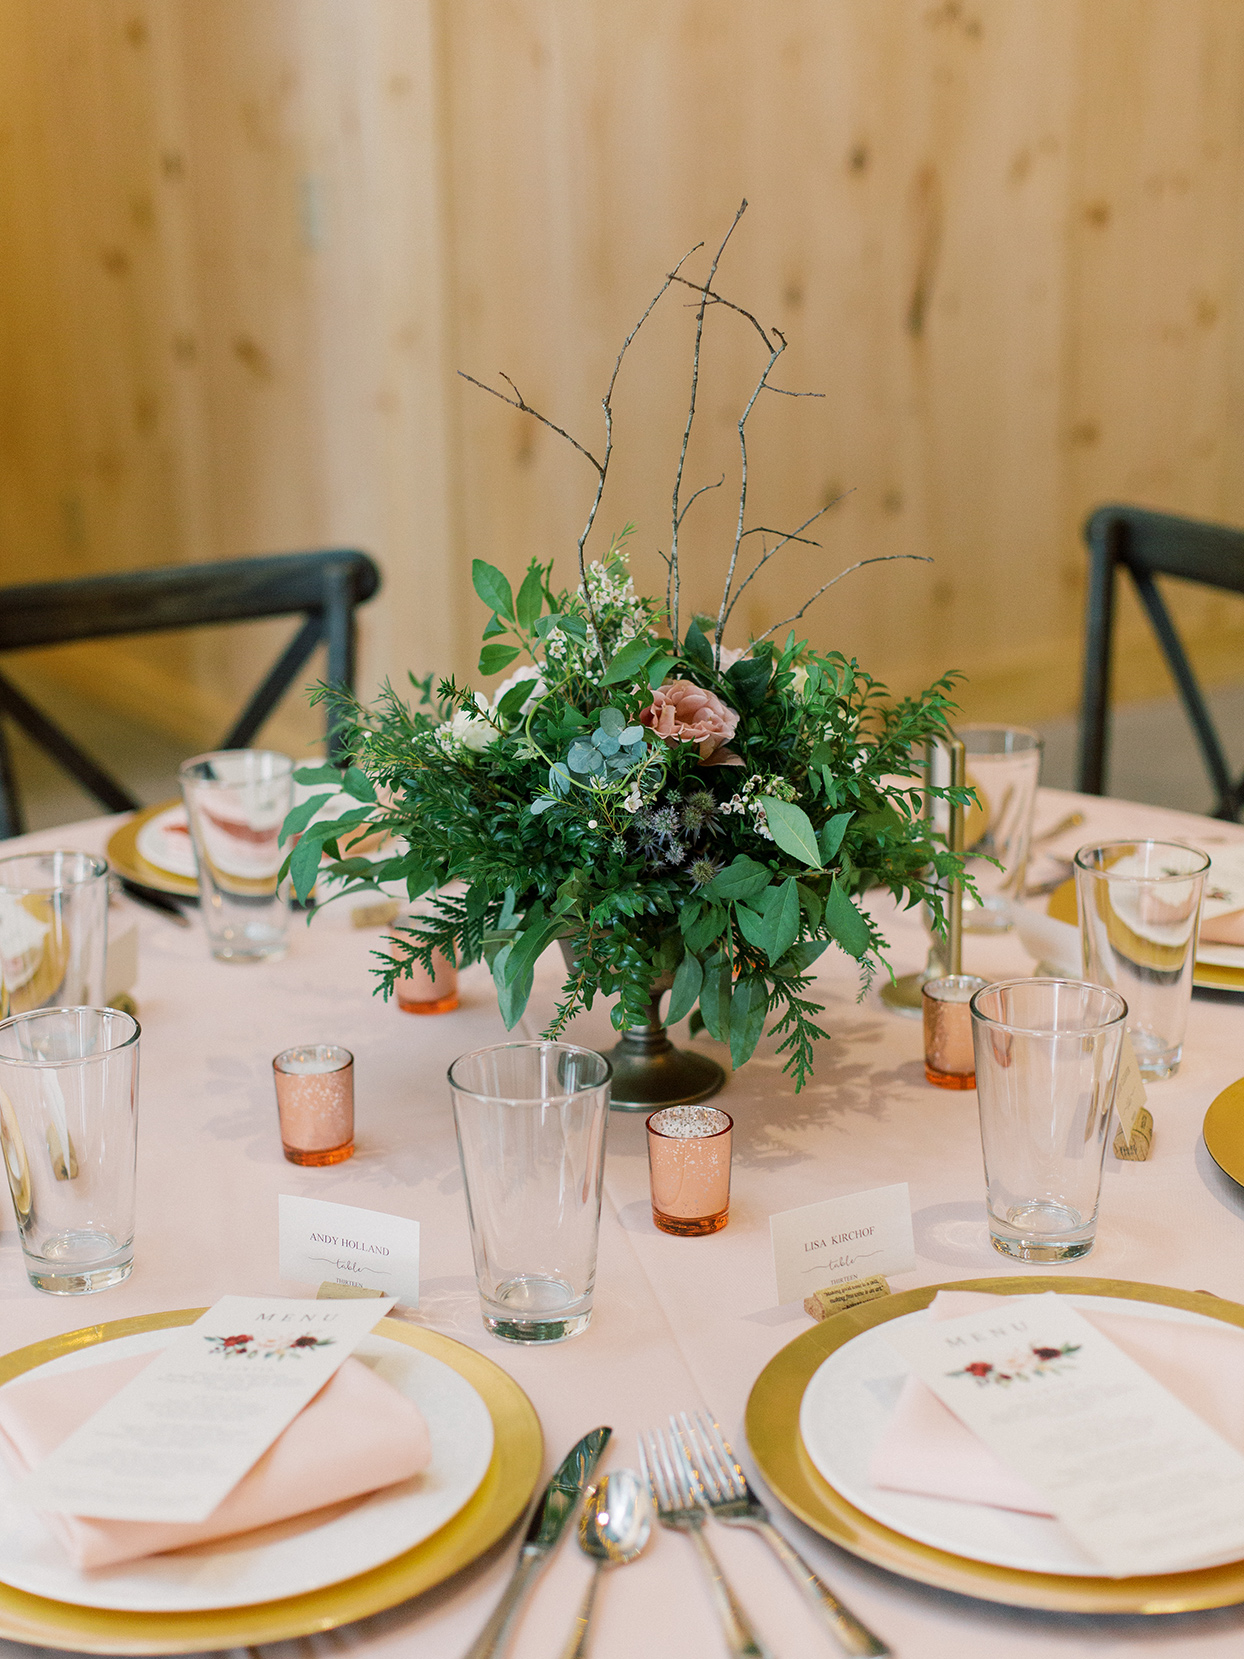 rebecca isaac wedding reception centerpiece floral and greenery